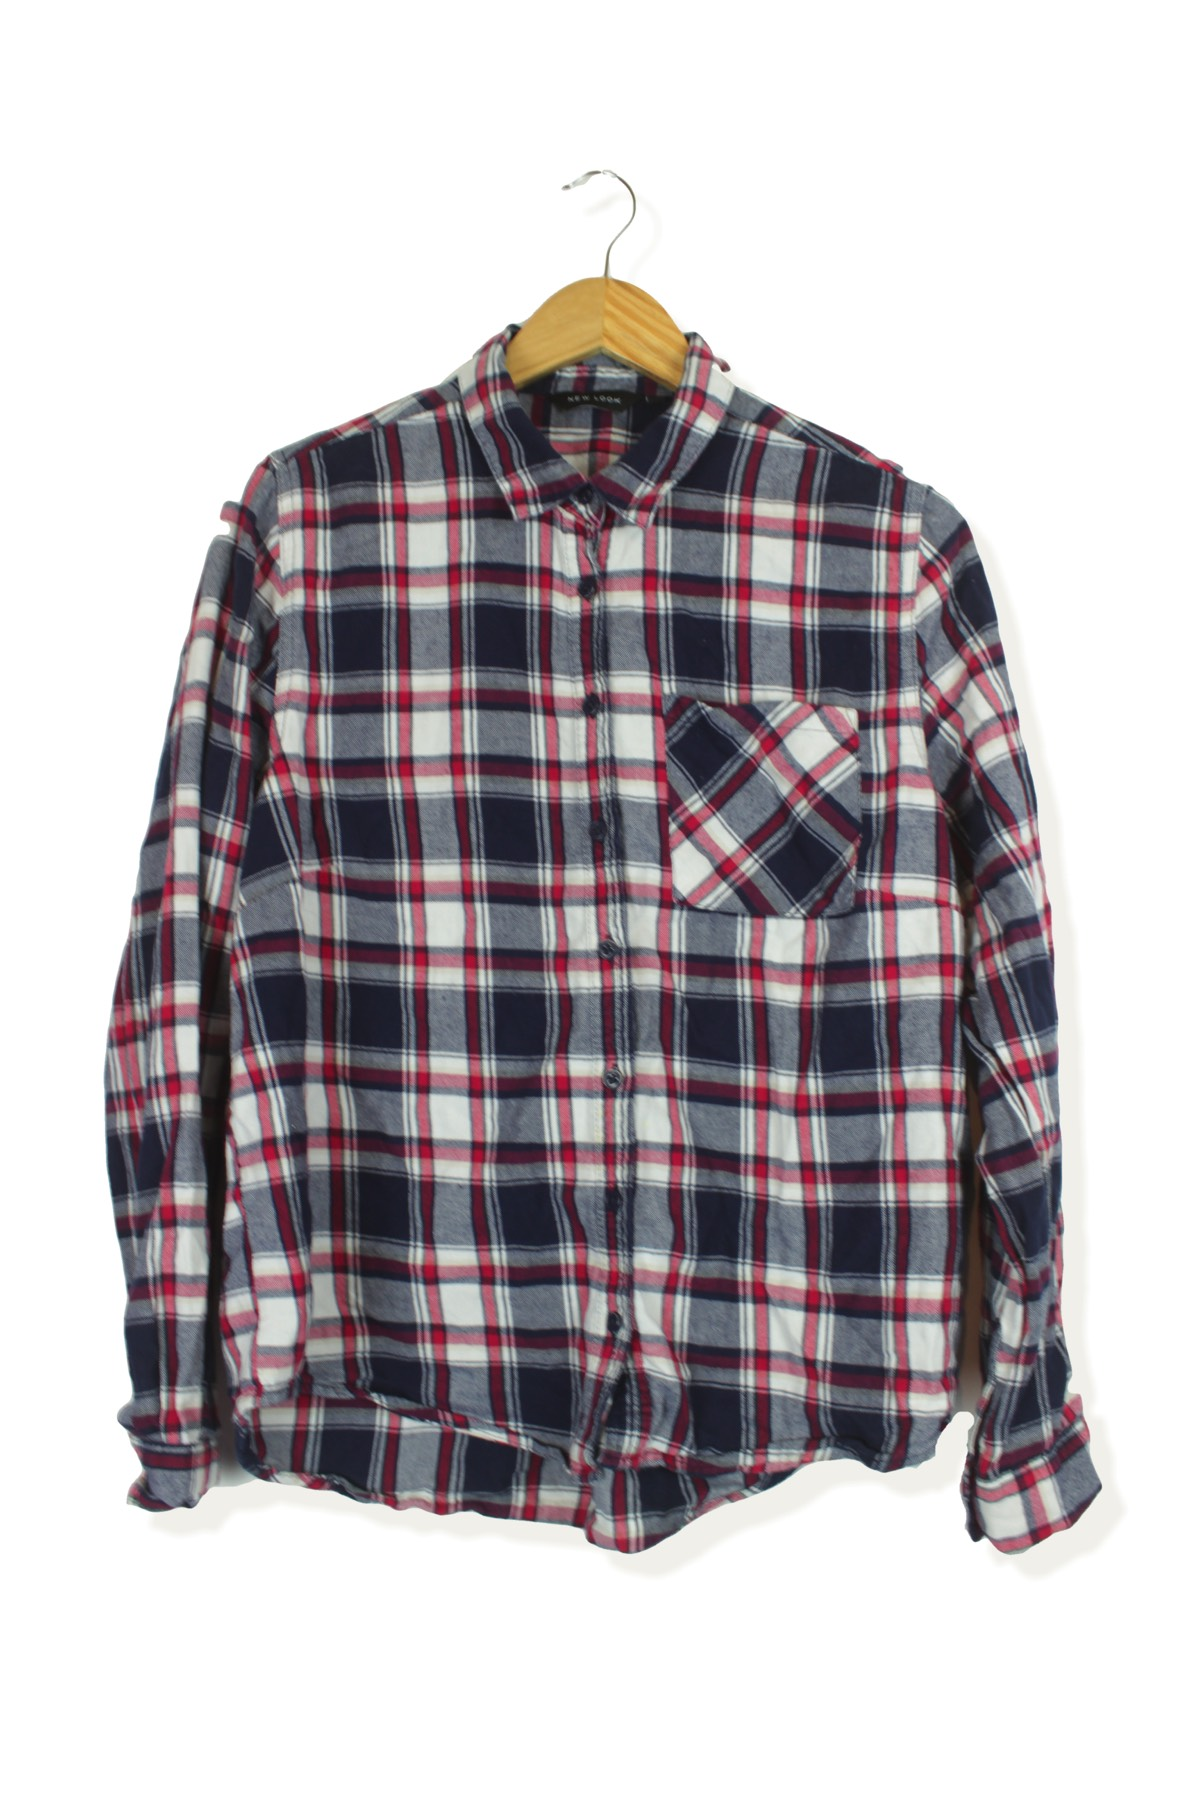 135804b0d737bb New Look • Size 14 • Women, Tops & Shirts, Second-Hand Clothing ...